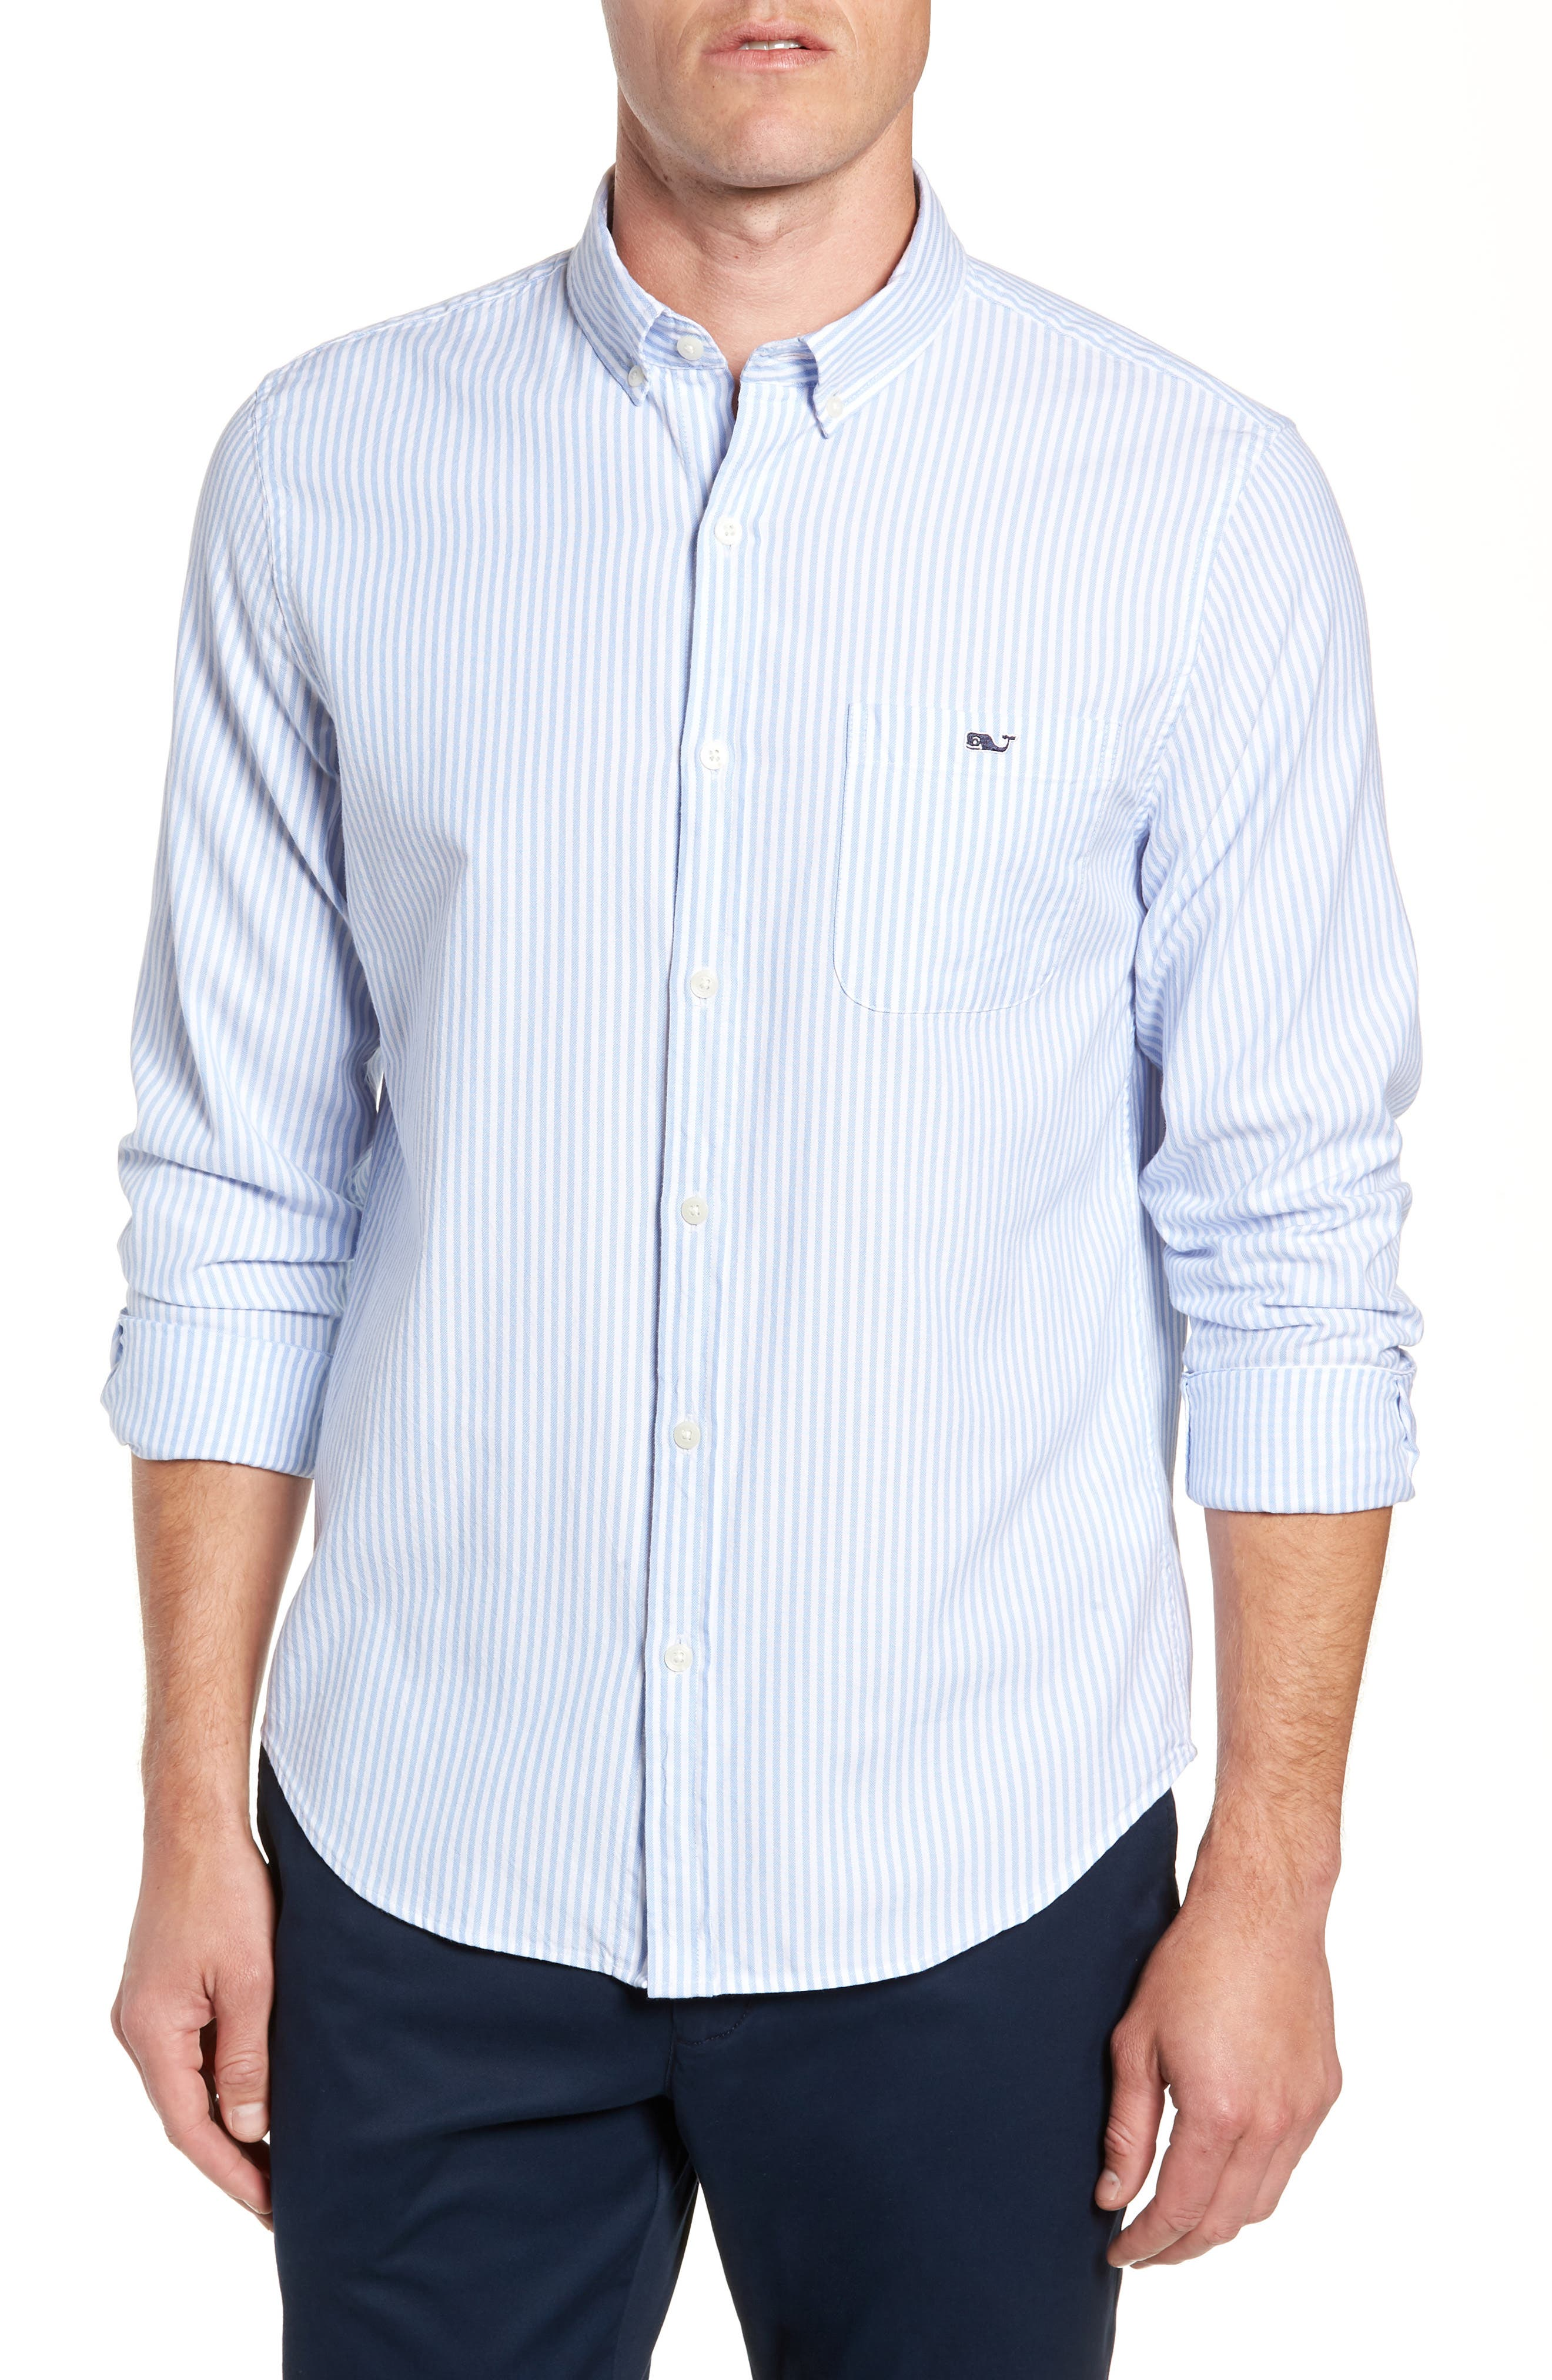 Tiloo Cay Slim Stretch Tucker Sport Shirt,                         Main,                         color, 484